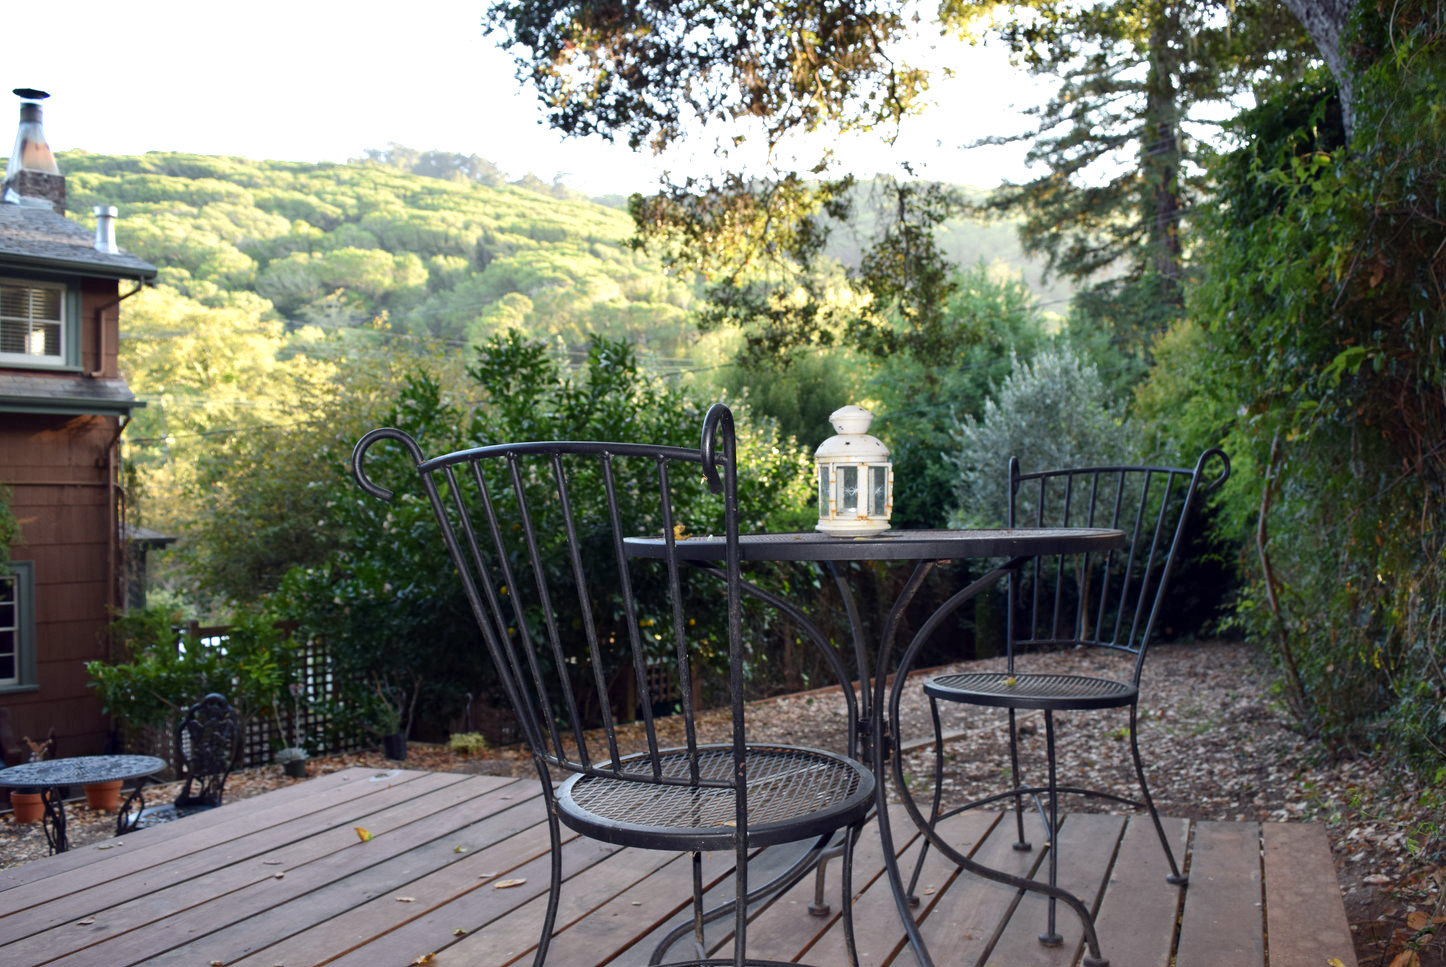 Wrought iron patio seating in private garden and deck with tree covered hill side view